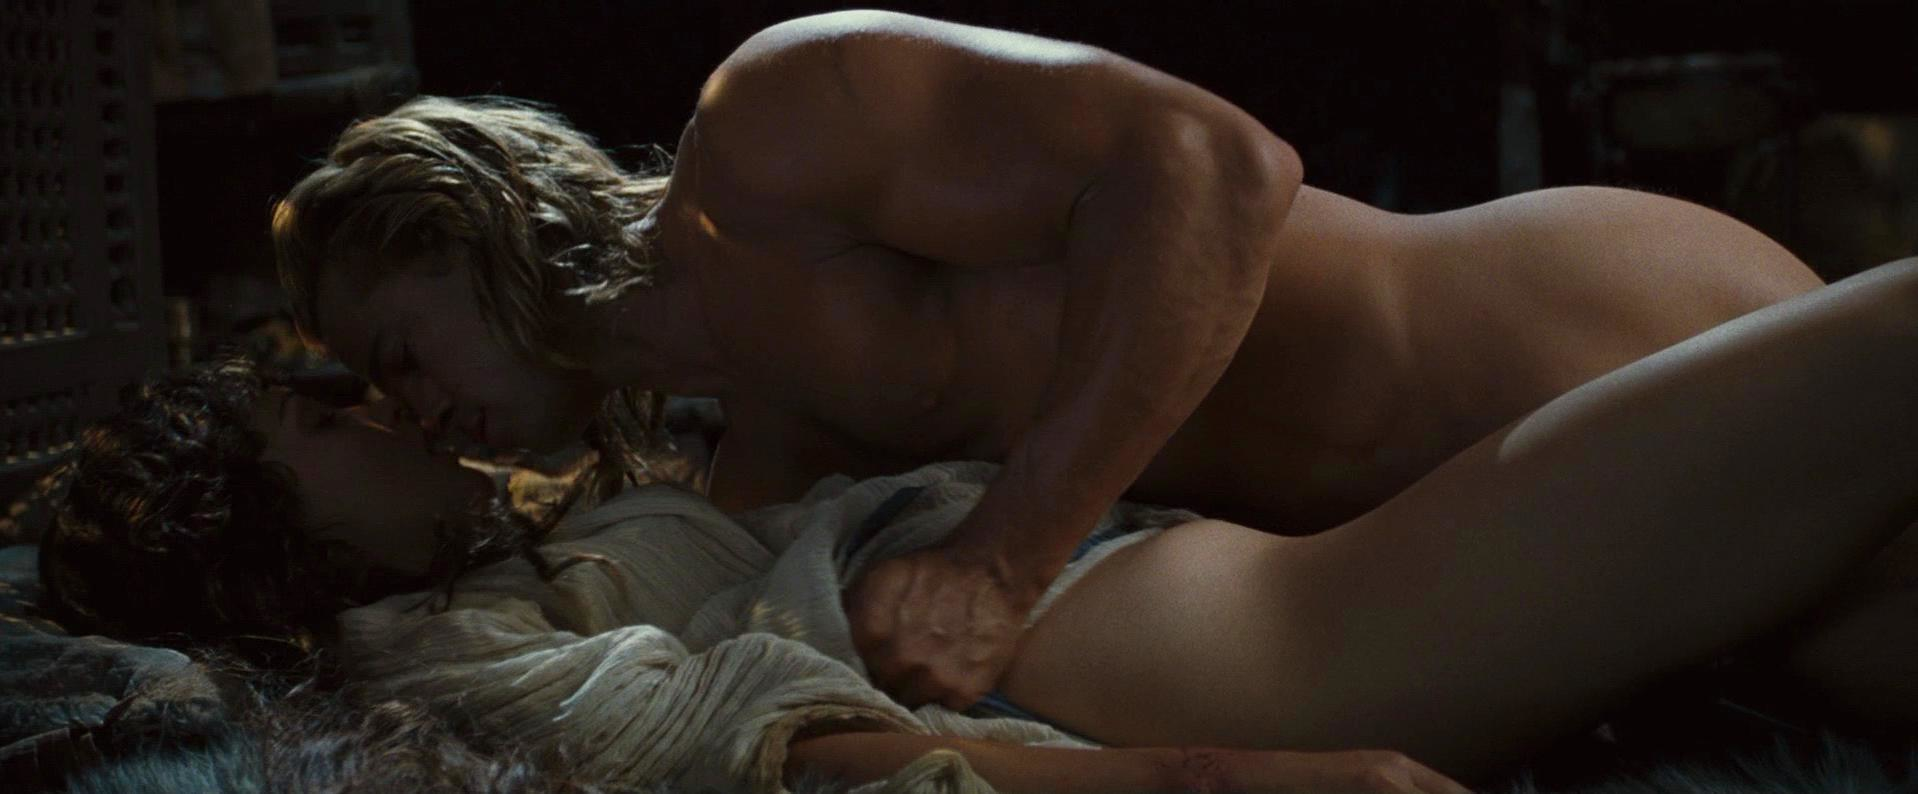 Boxing helena sex scenes download